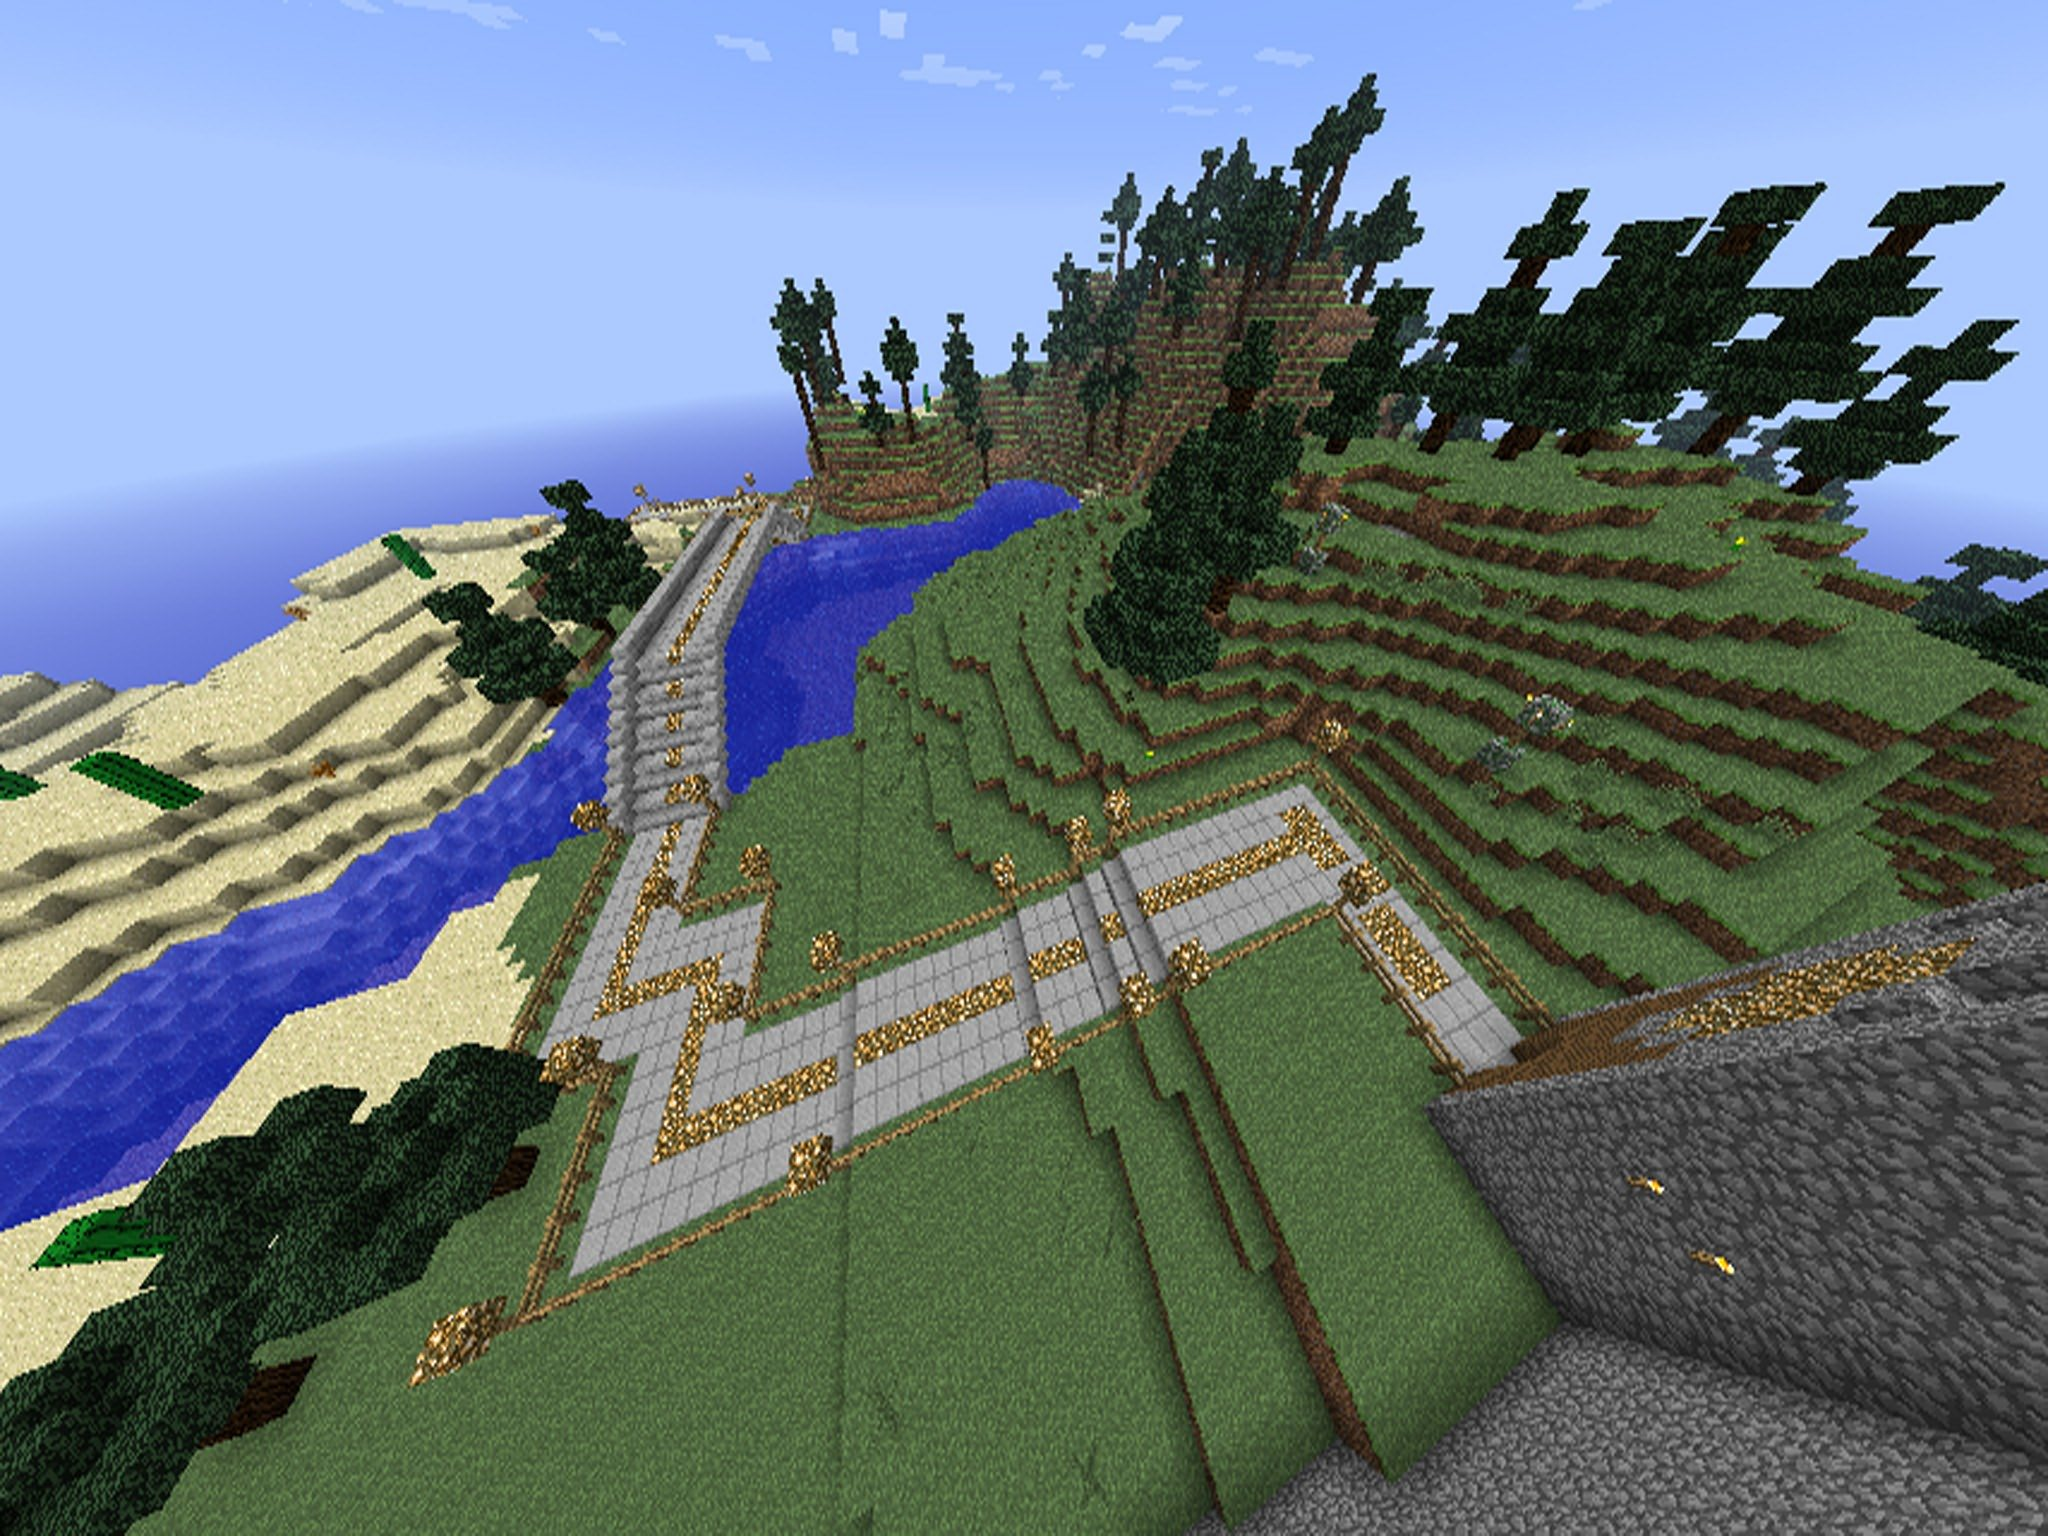 Minecraft Map - Friend World screenshot 4